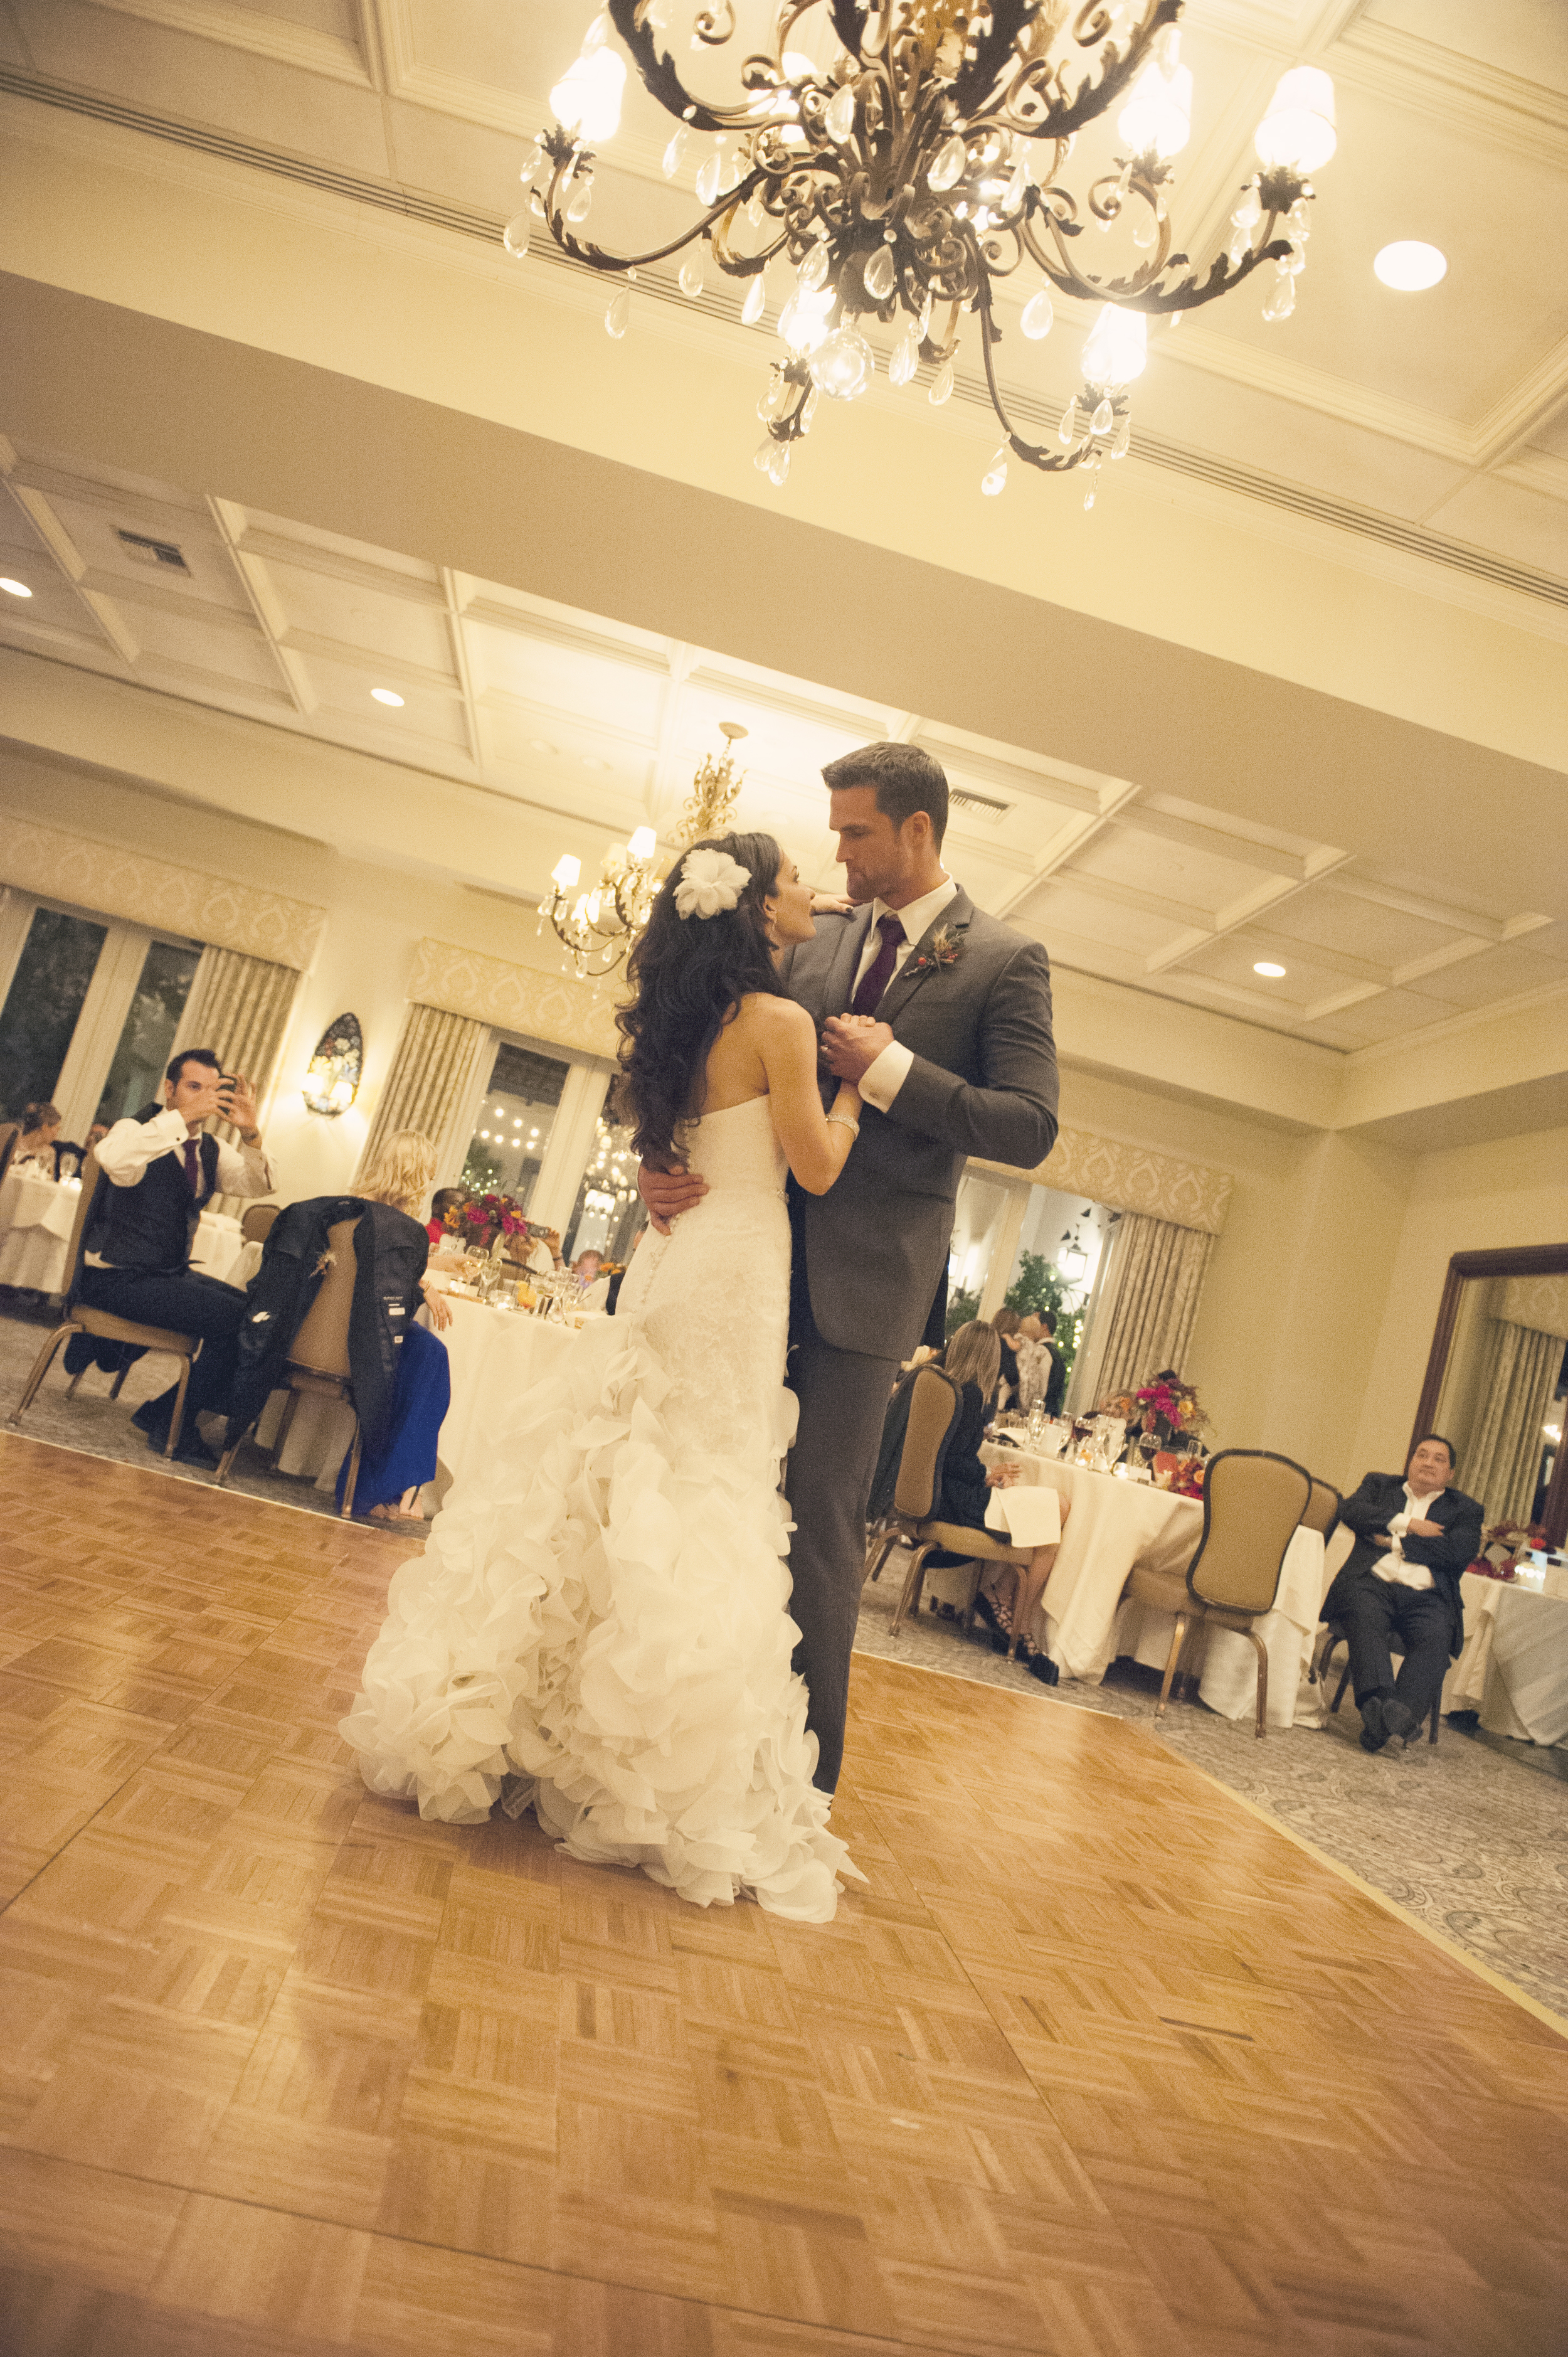 The First Dance.    Destination Wedding Planner:   Andrea Eppolito Events   |  Historical Wedding Venue:   The Arizona Inn   |  Photography:  Raylene Streuber